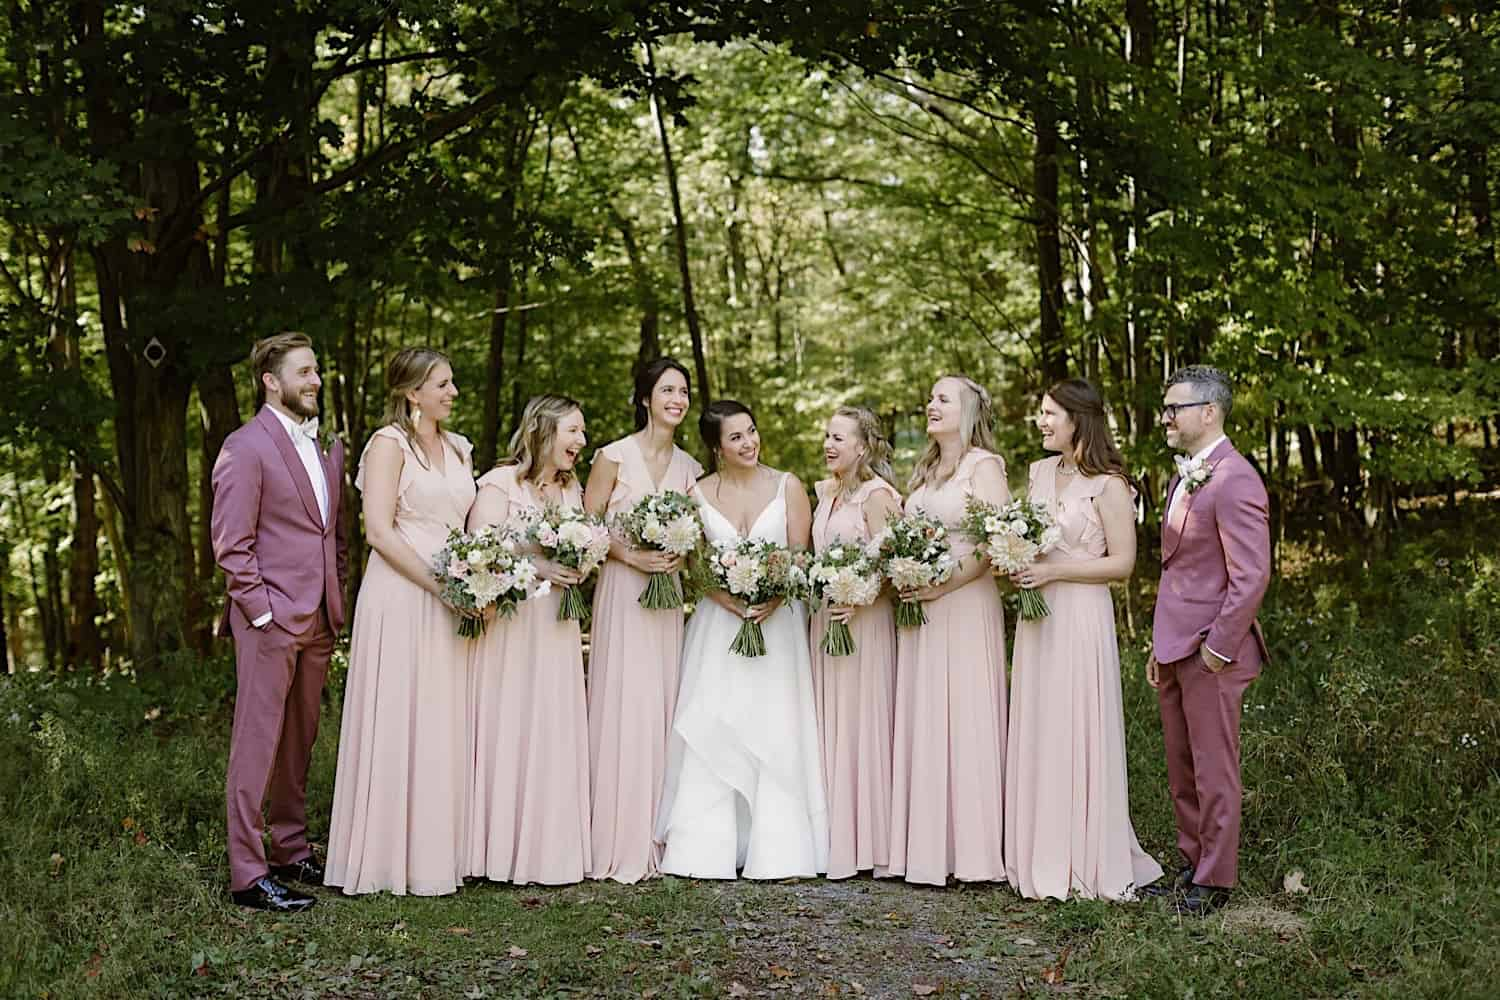 rose colored bridesmaids gowns